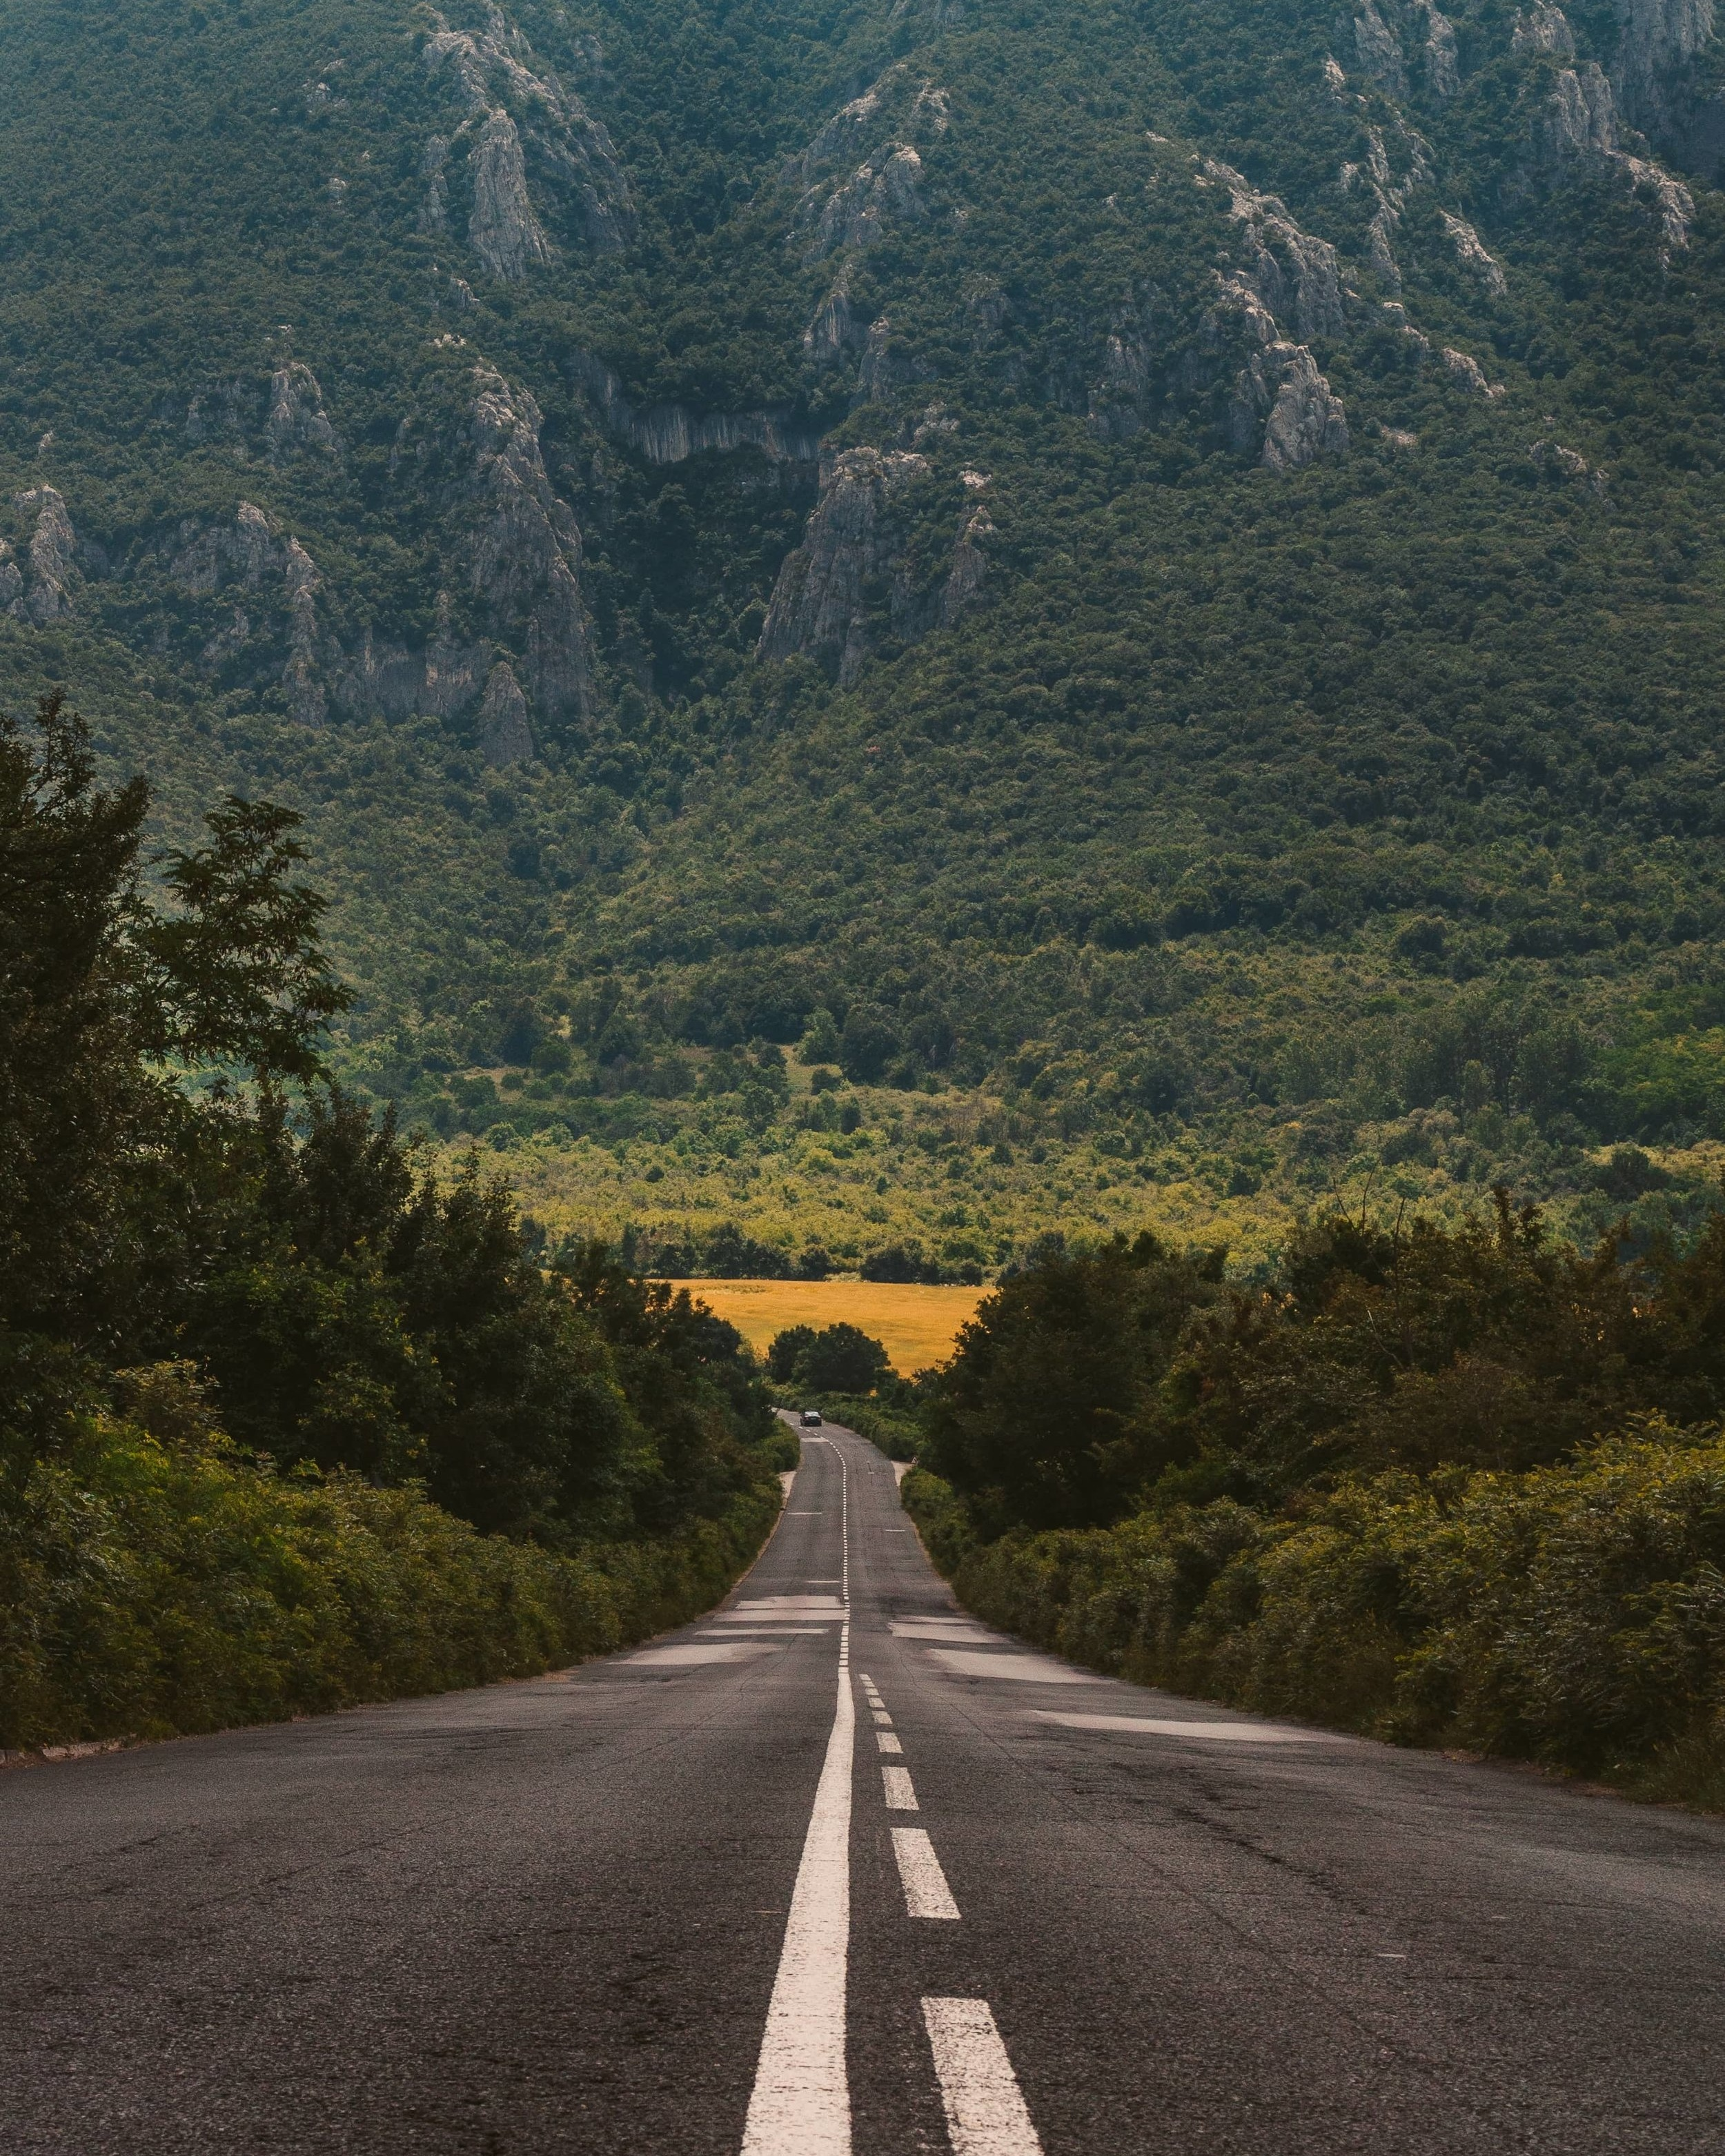 Road in Bulgaria. Photo by  Evgeni Evgeniev  on  Unsplash